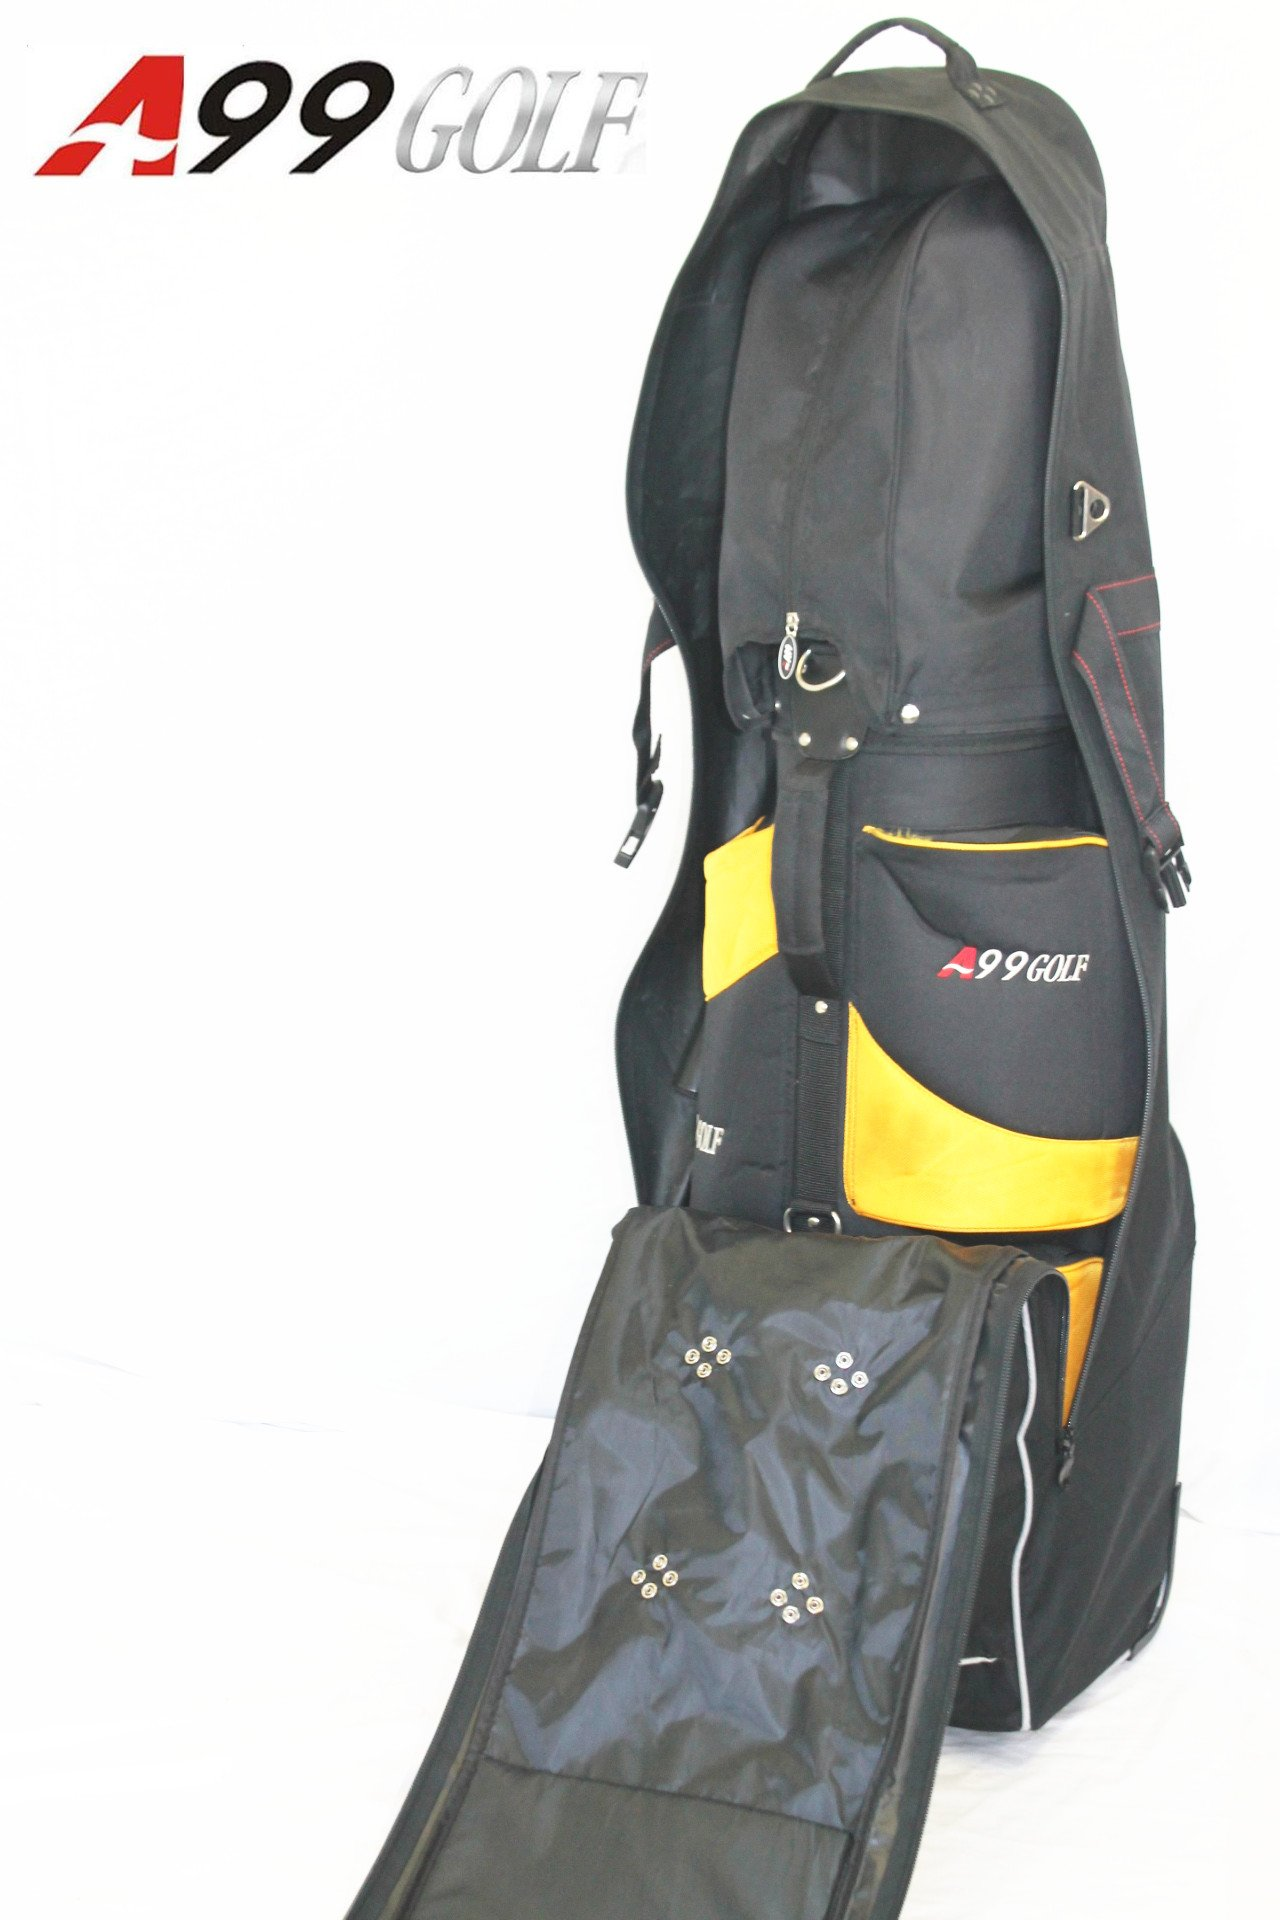 A99 Golf NEW T04 Black Travel Cover Whieeled Bag by A99 Golf (Image #5)